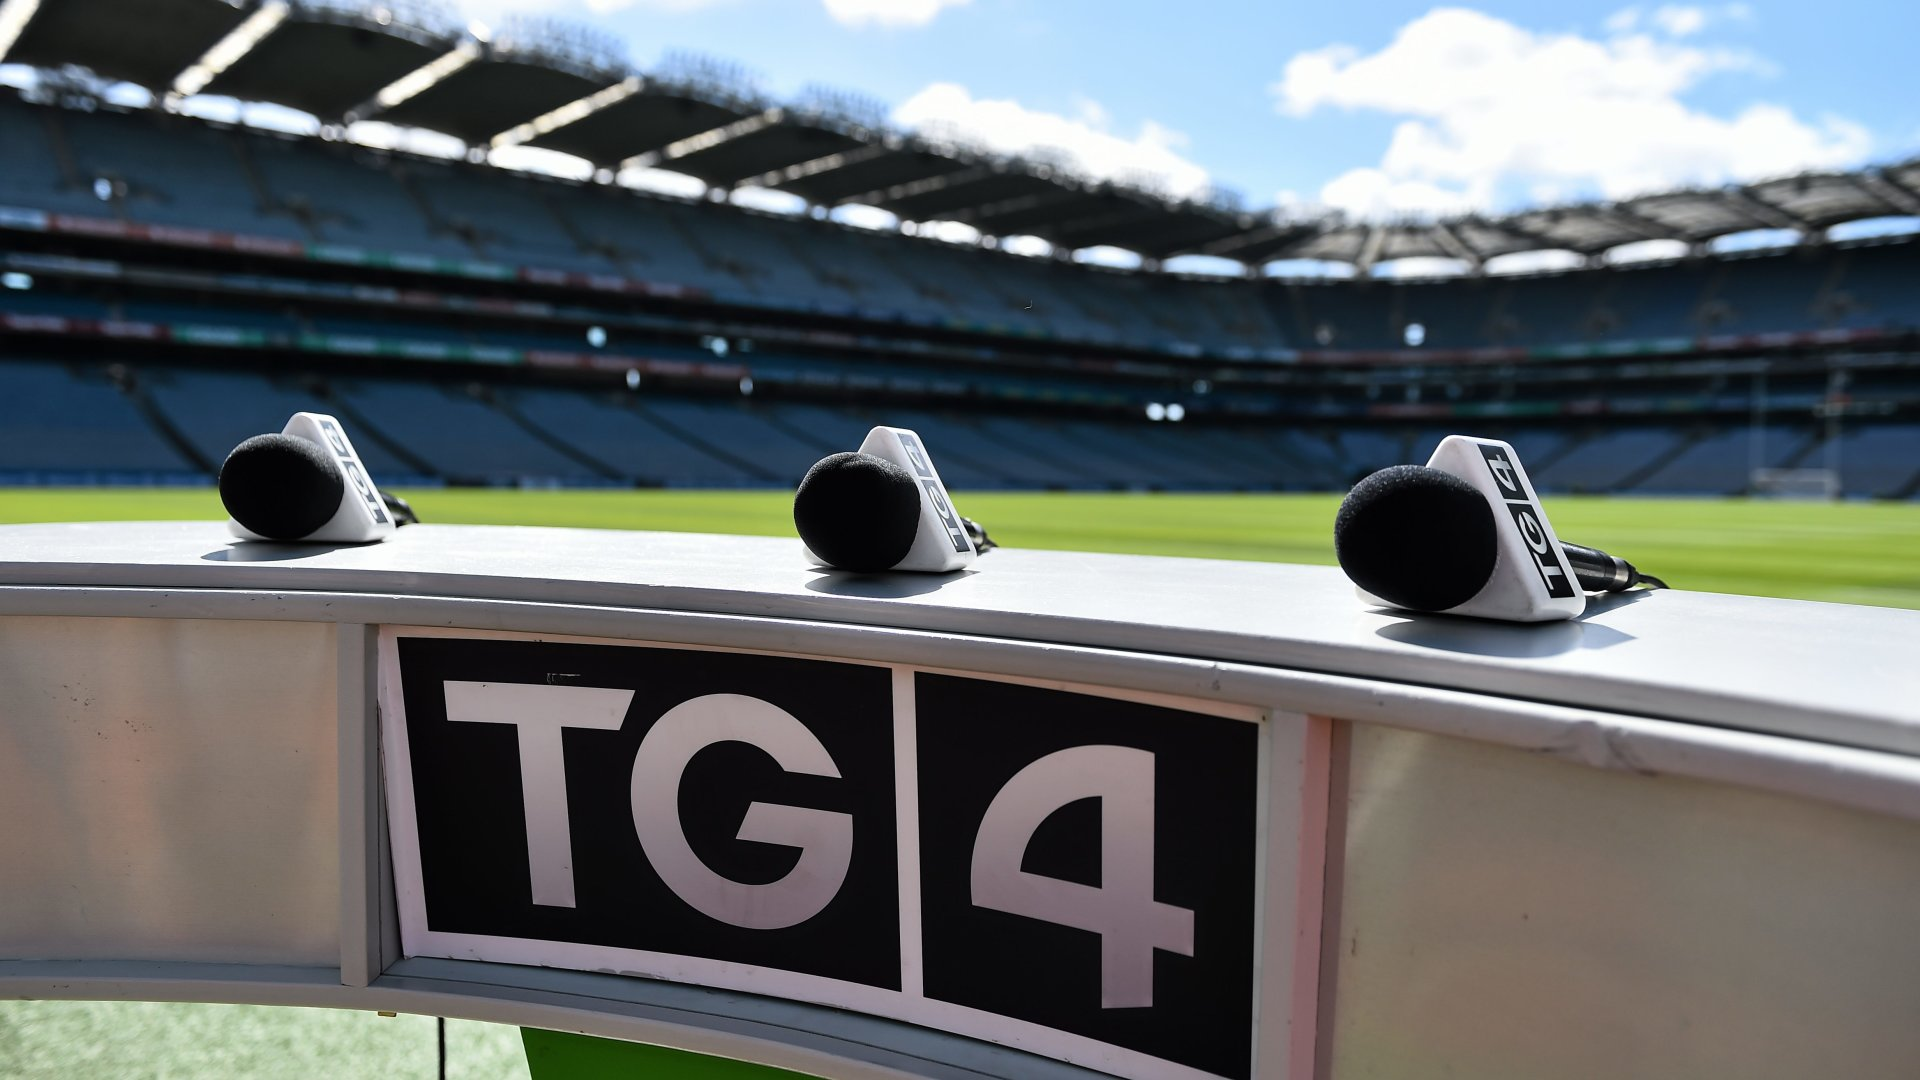 8 Hours of Live GAA